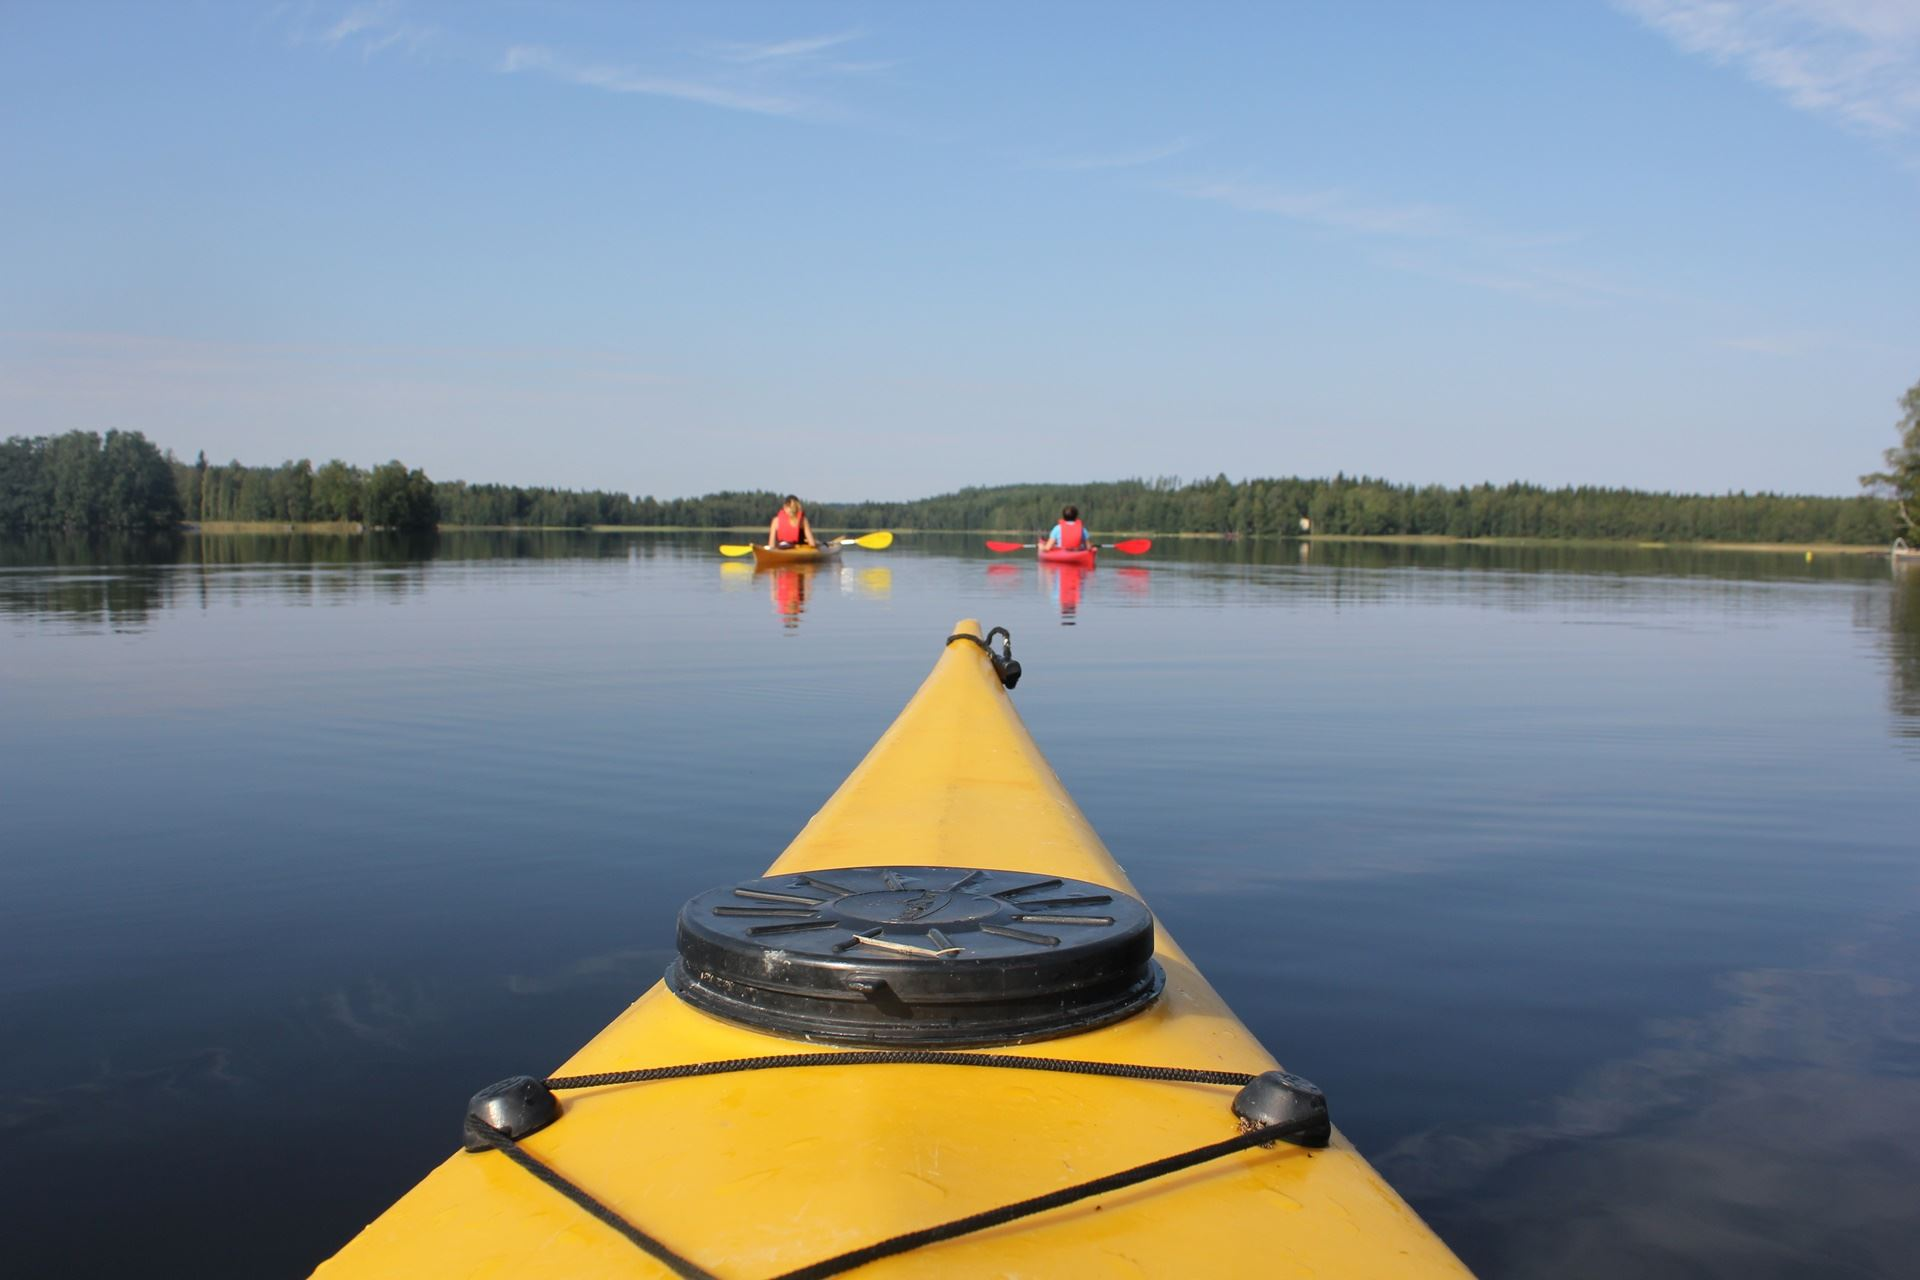 Secrets of the Lake canoeing trip | Best Lake Nature Adventures